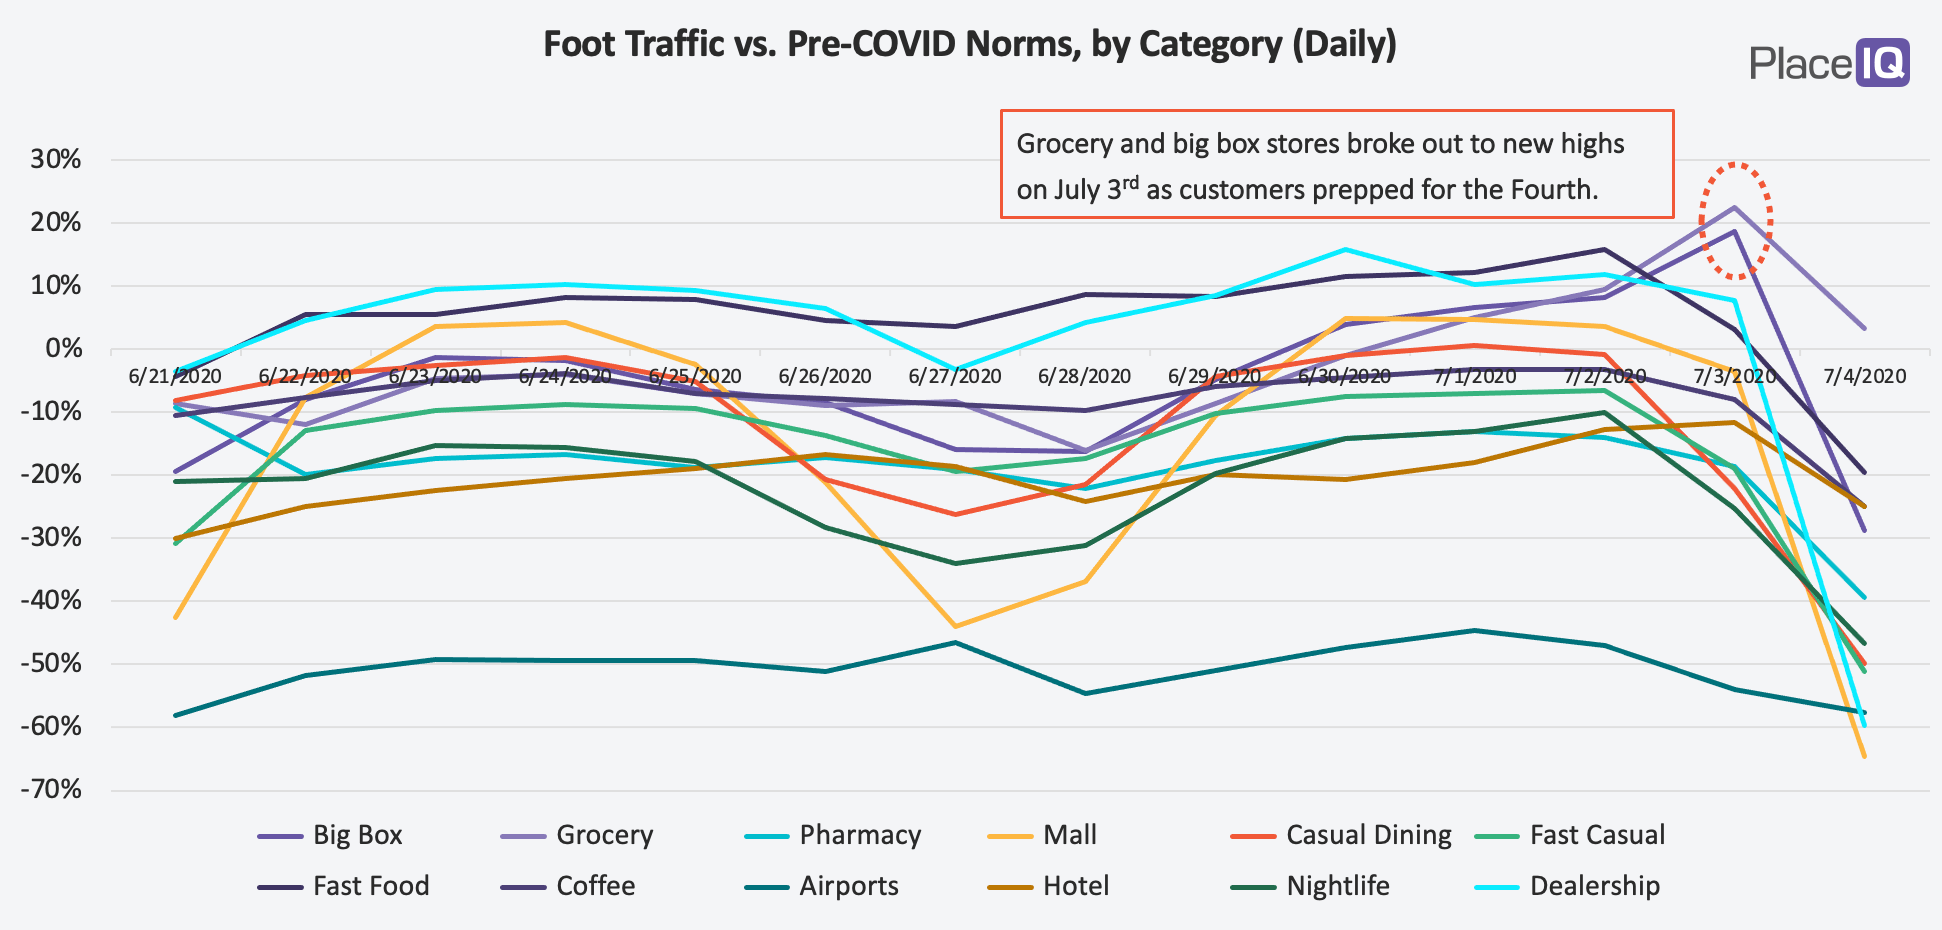 CHART: Foot Traffic vs. Pre-COVID Norms, by Category (Daily)